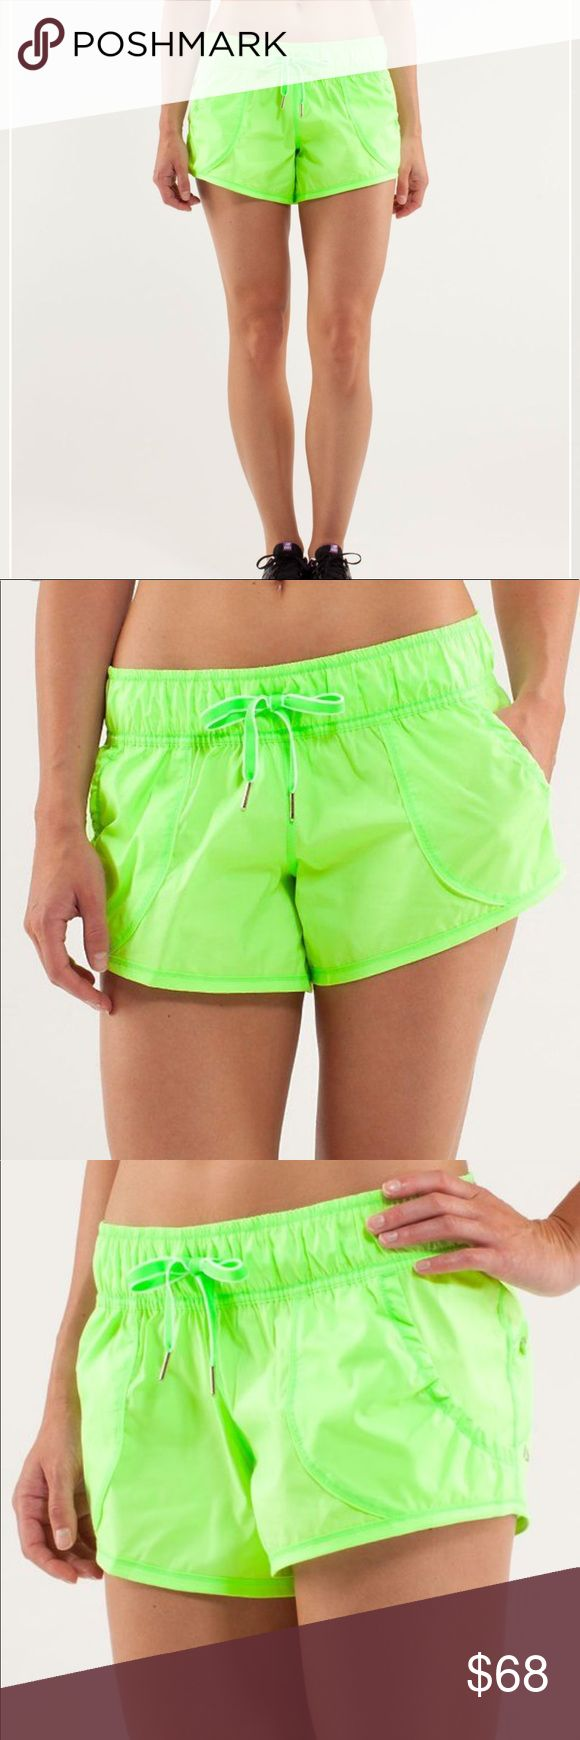 Lululemon work it out lime green shorts ⚡️NO trades  ⚡️open to ALL offers!  ⚡️ bundle for MAJOR discounts!  ⚡️feel free to ask any questions ⚡️ I will not respond to offers in the comments, please use the offer button for all offers.  ⚡️Please only ask for model photos if you are very interested!  ⚡️All sales are final and all offers are binding.  ⚡️ If I miss your comment, please comment again! lululemon athletica Shorts